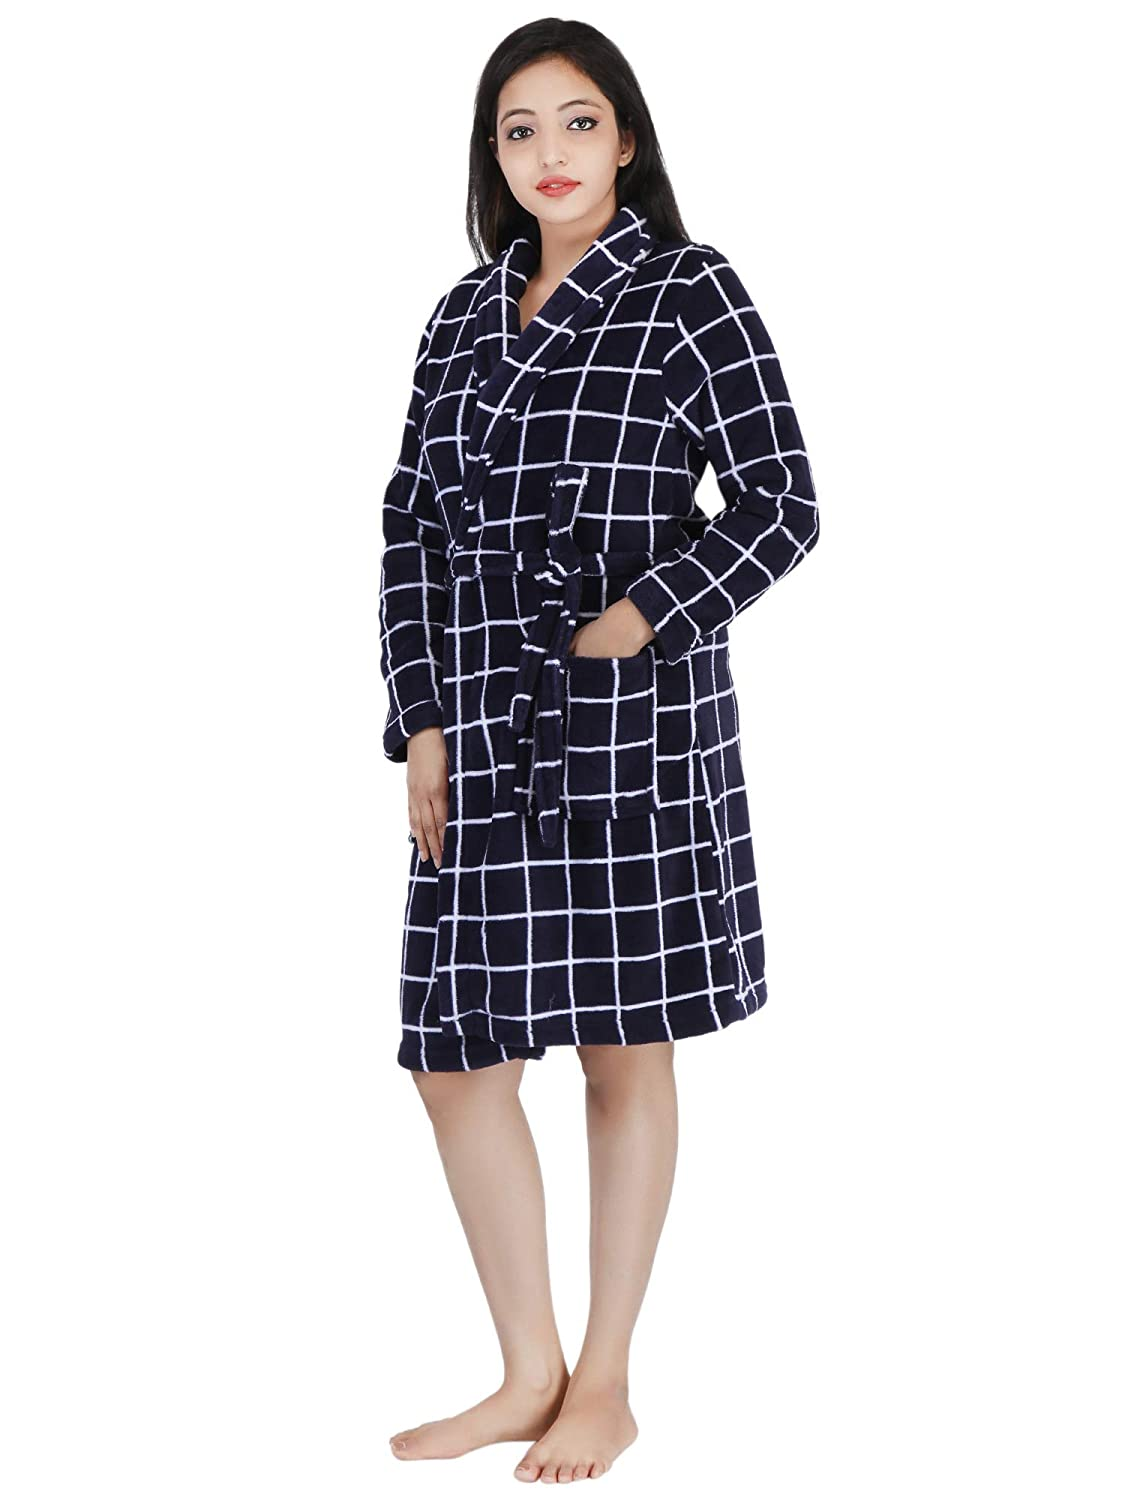 6e1204c112 Buy Linenwalas Super Comfort Unisex Bath Gown Night Gown Pollar Fleece  Checks Bath Robe - Navy Blue   White - XL Large Online at Low Prices in  India ...